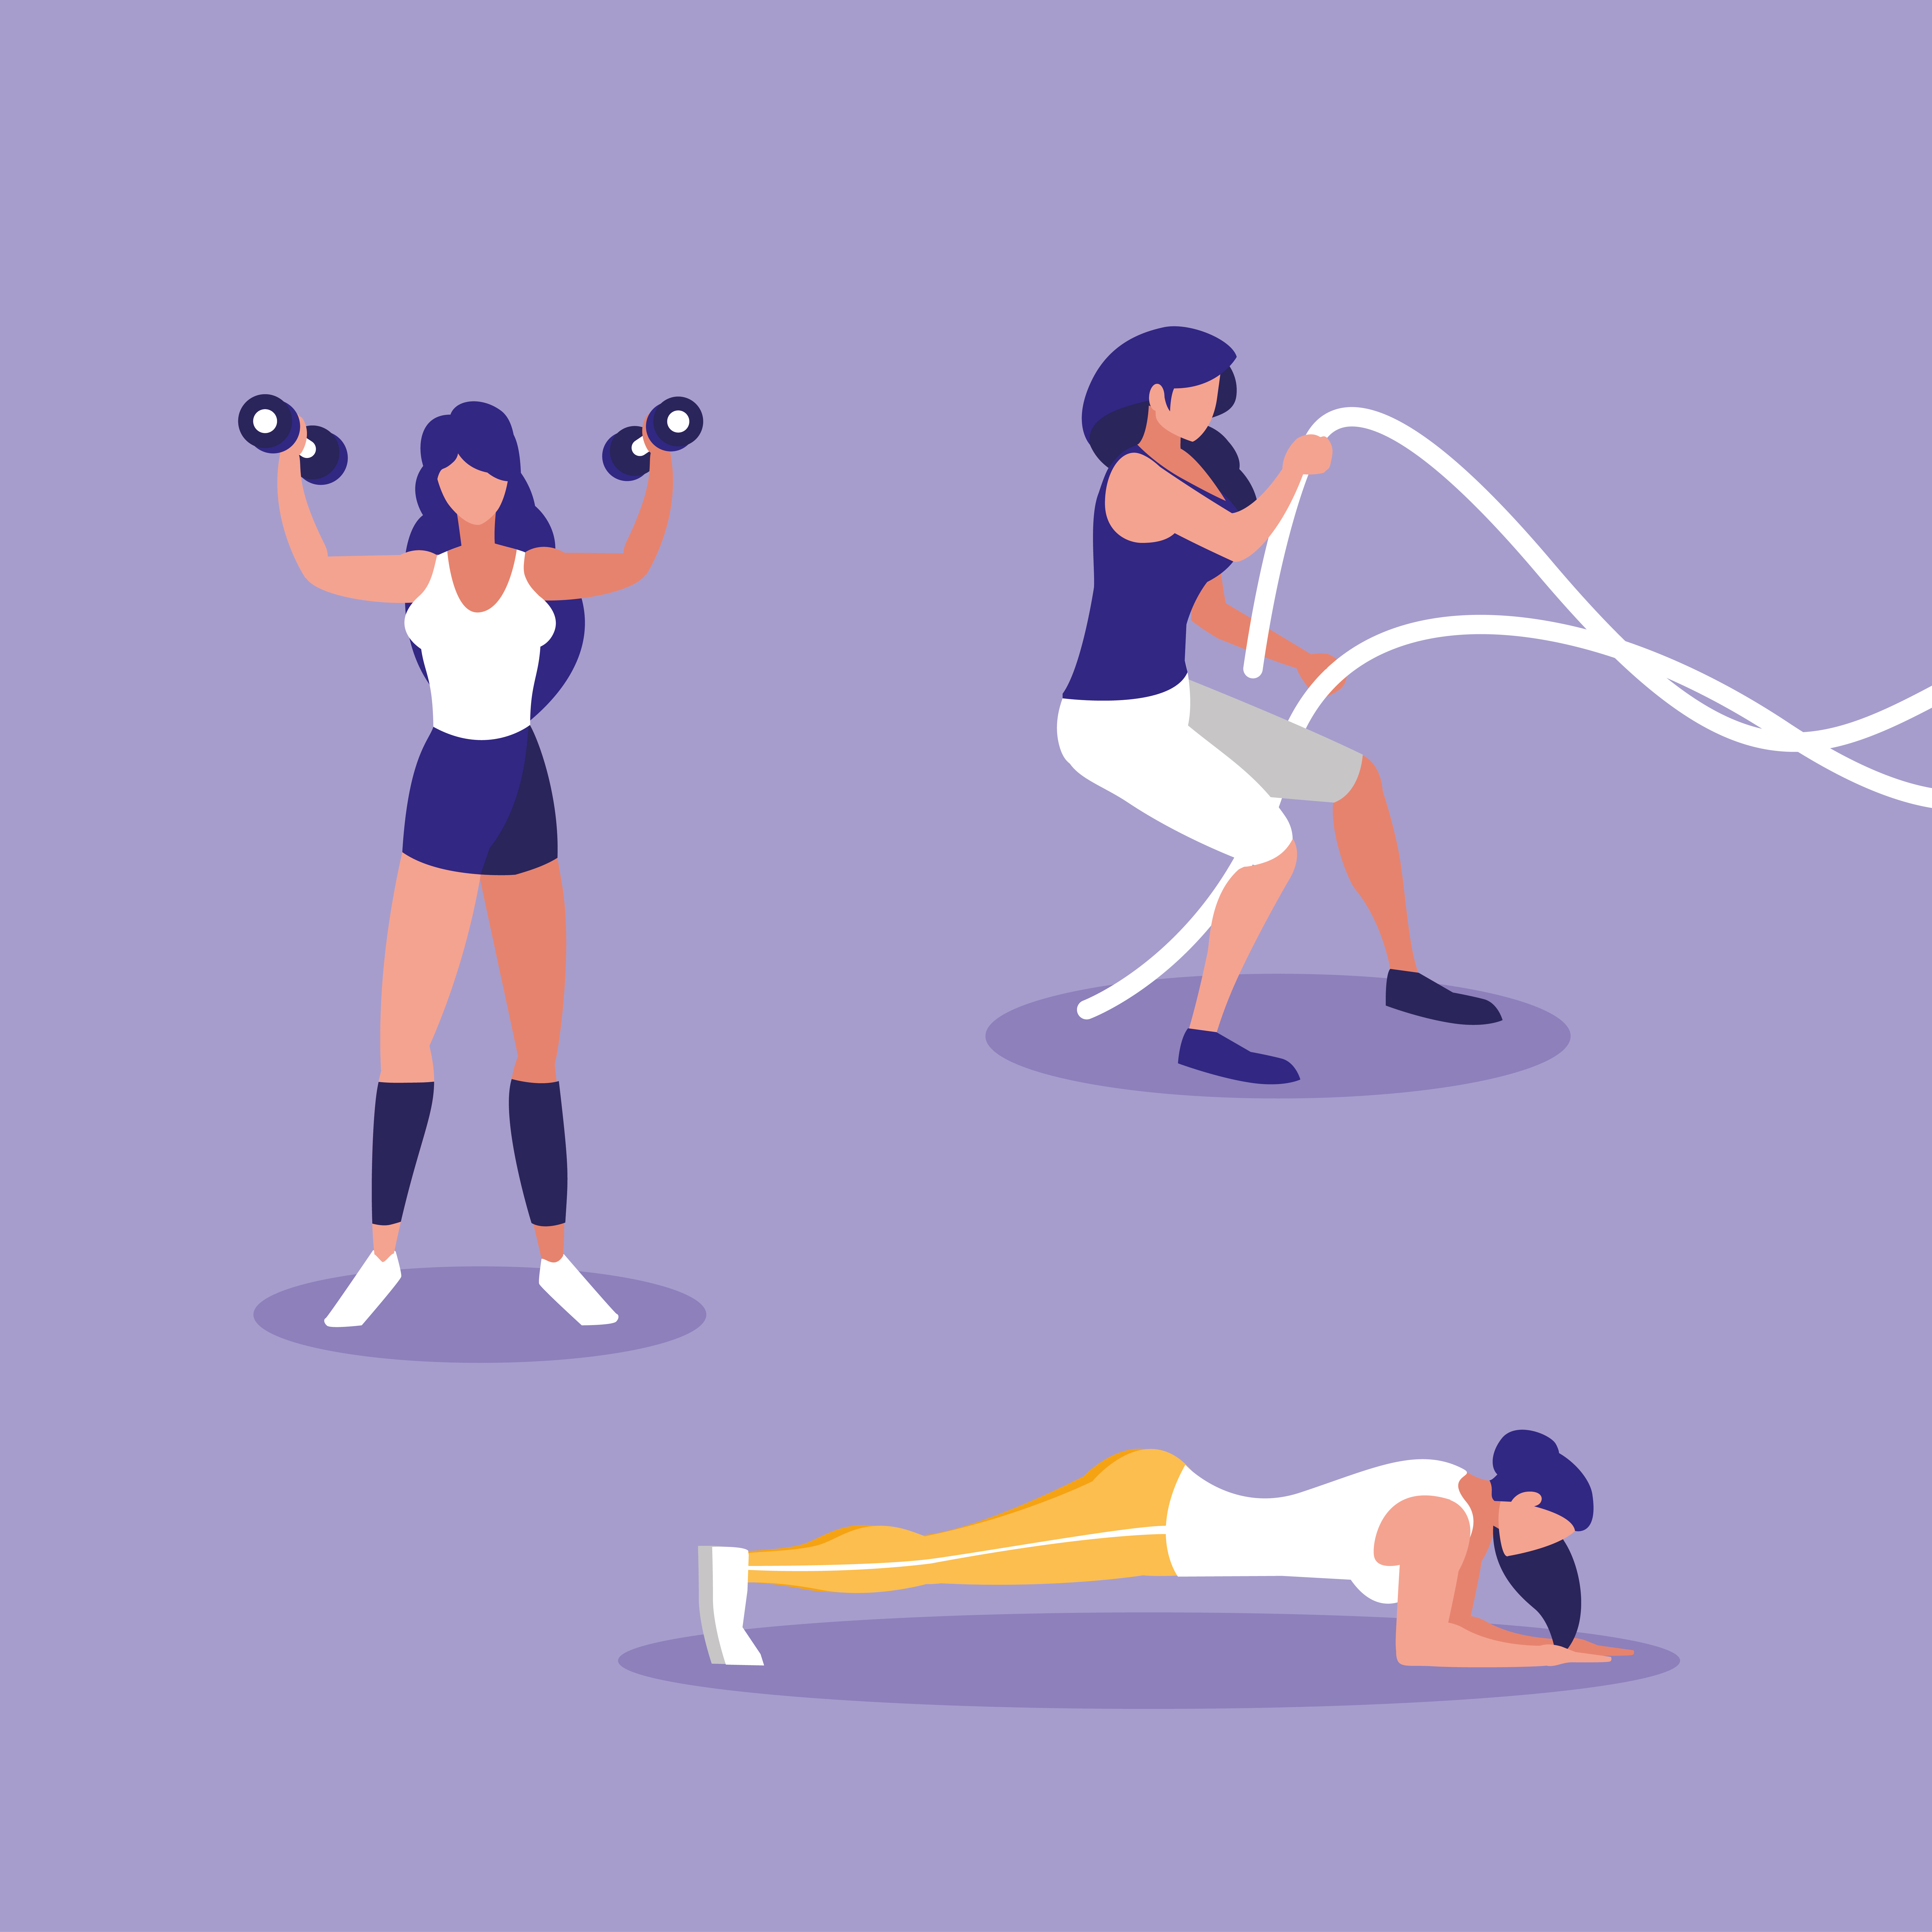 Group Of Athletic Women Exercising Download Free Vectors Clipart Graphics Vector Art Women in wwe women young women fit national council of negro women women clothing women in engineering women accessories fit for women gym ltd. vecteezy